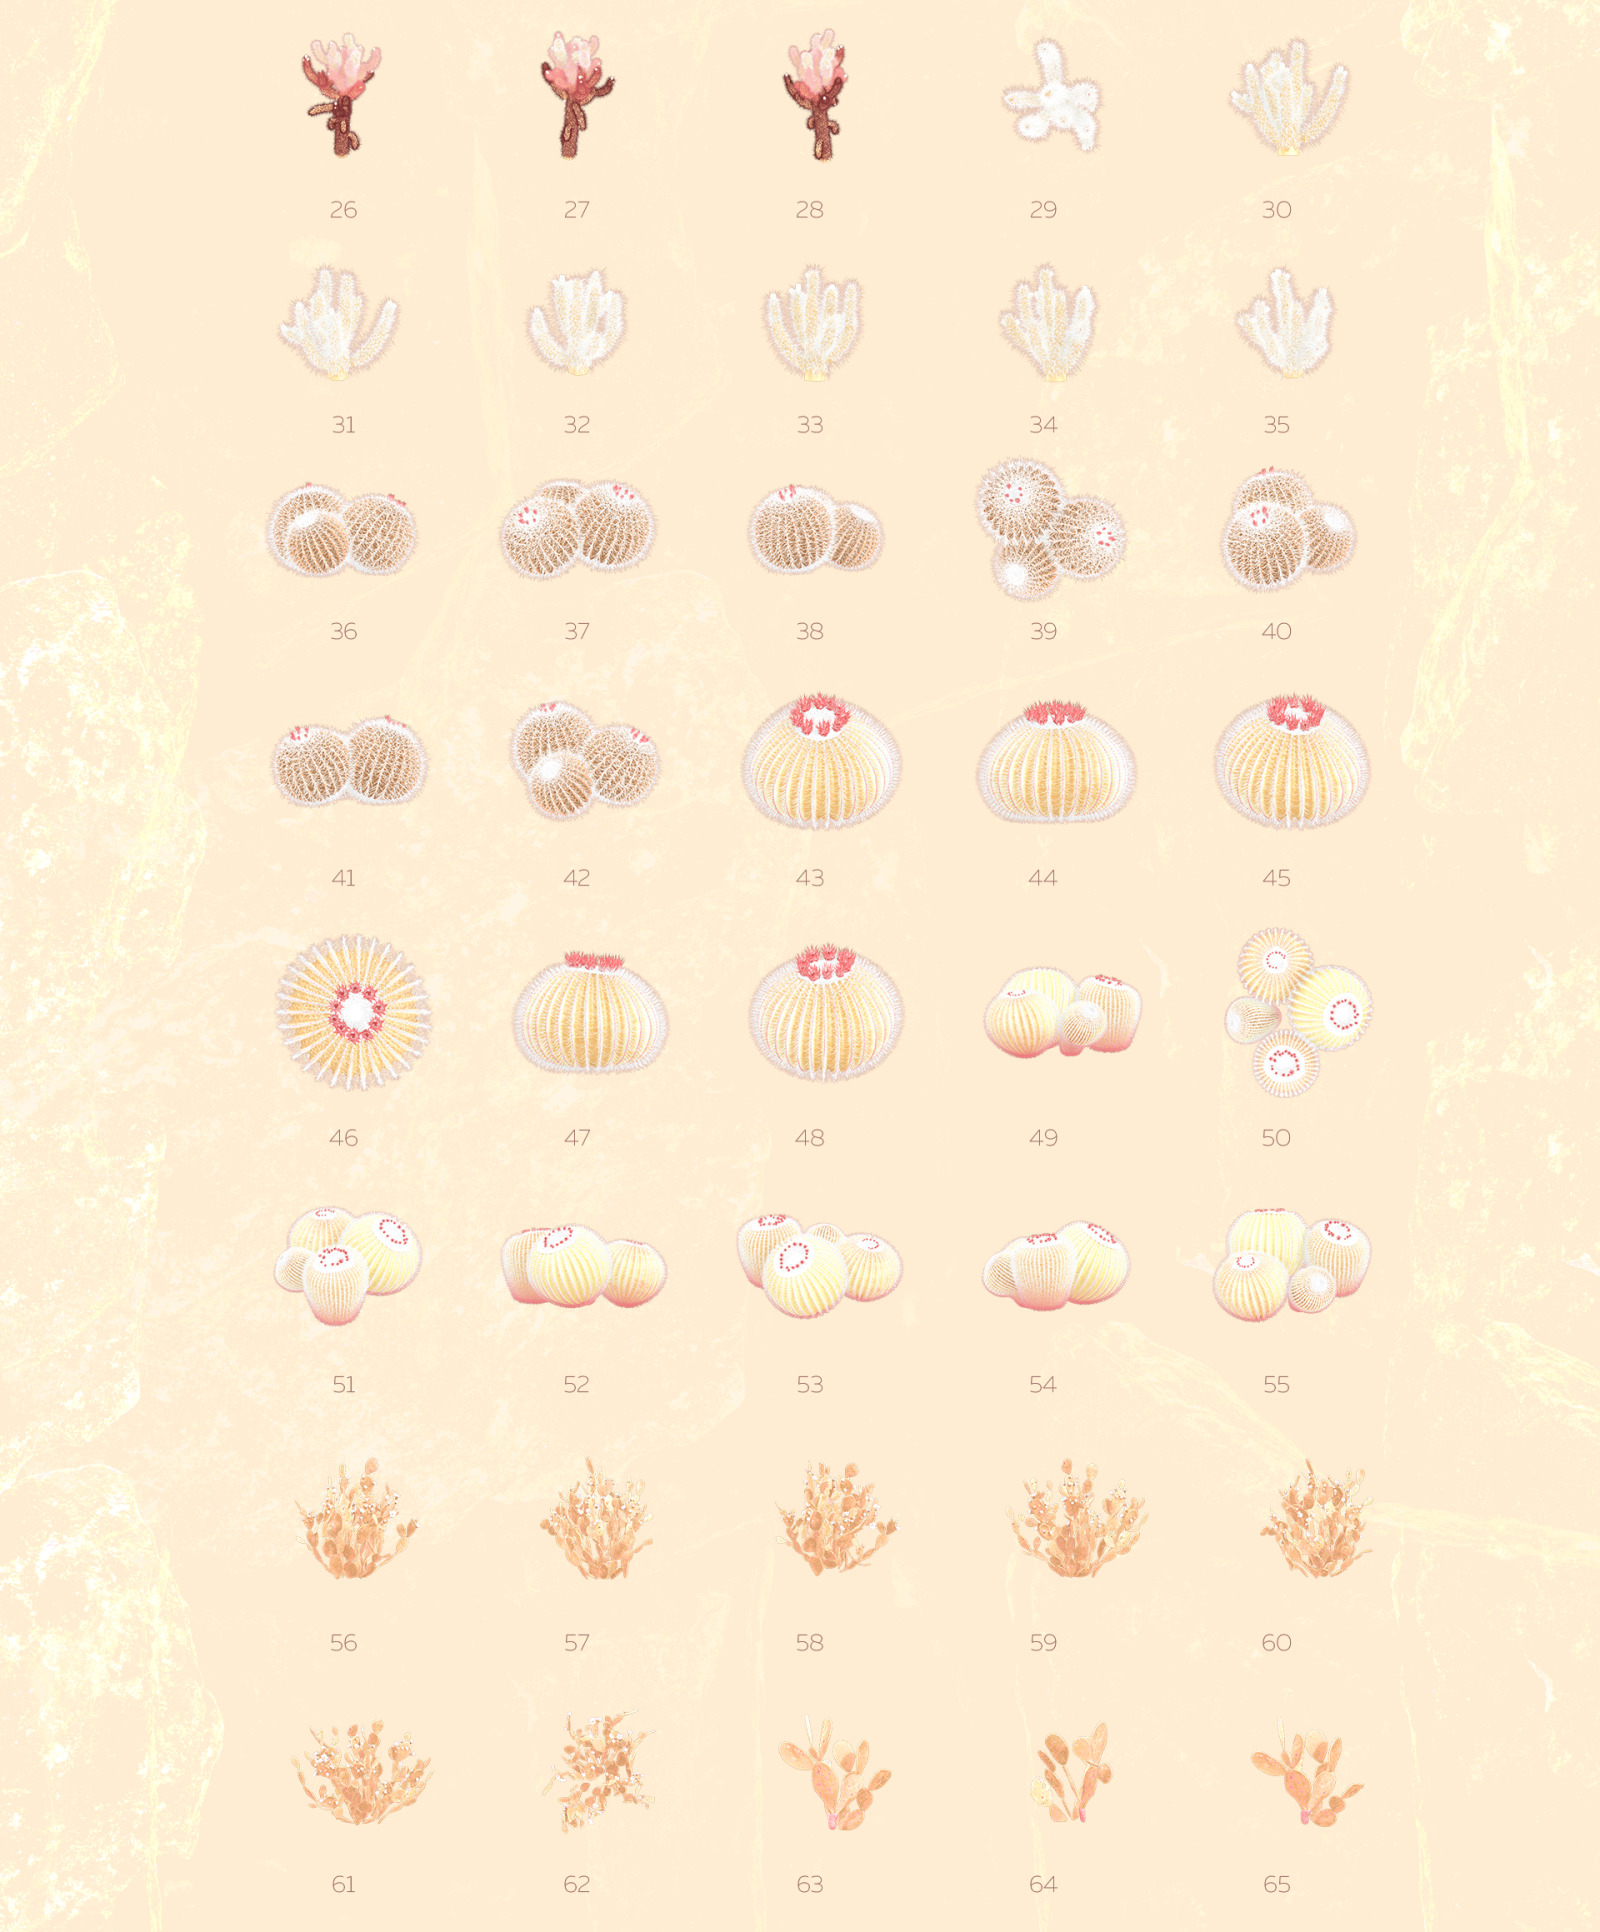 Gold of the desert #01, 155 cactus and rock mockups + 30 patterns